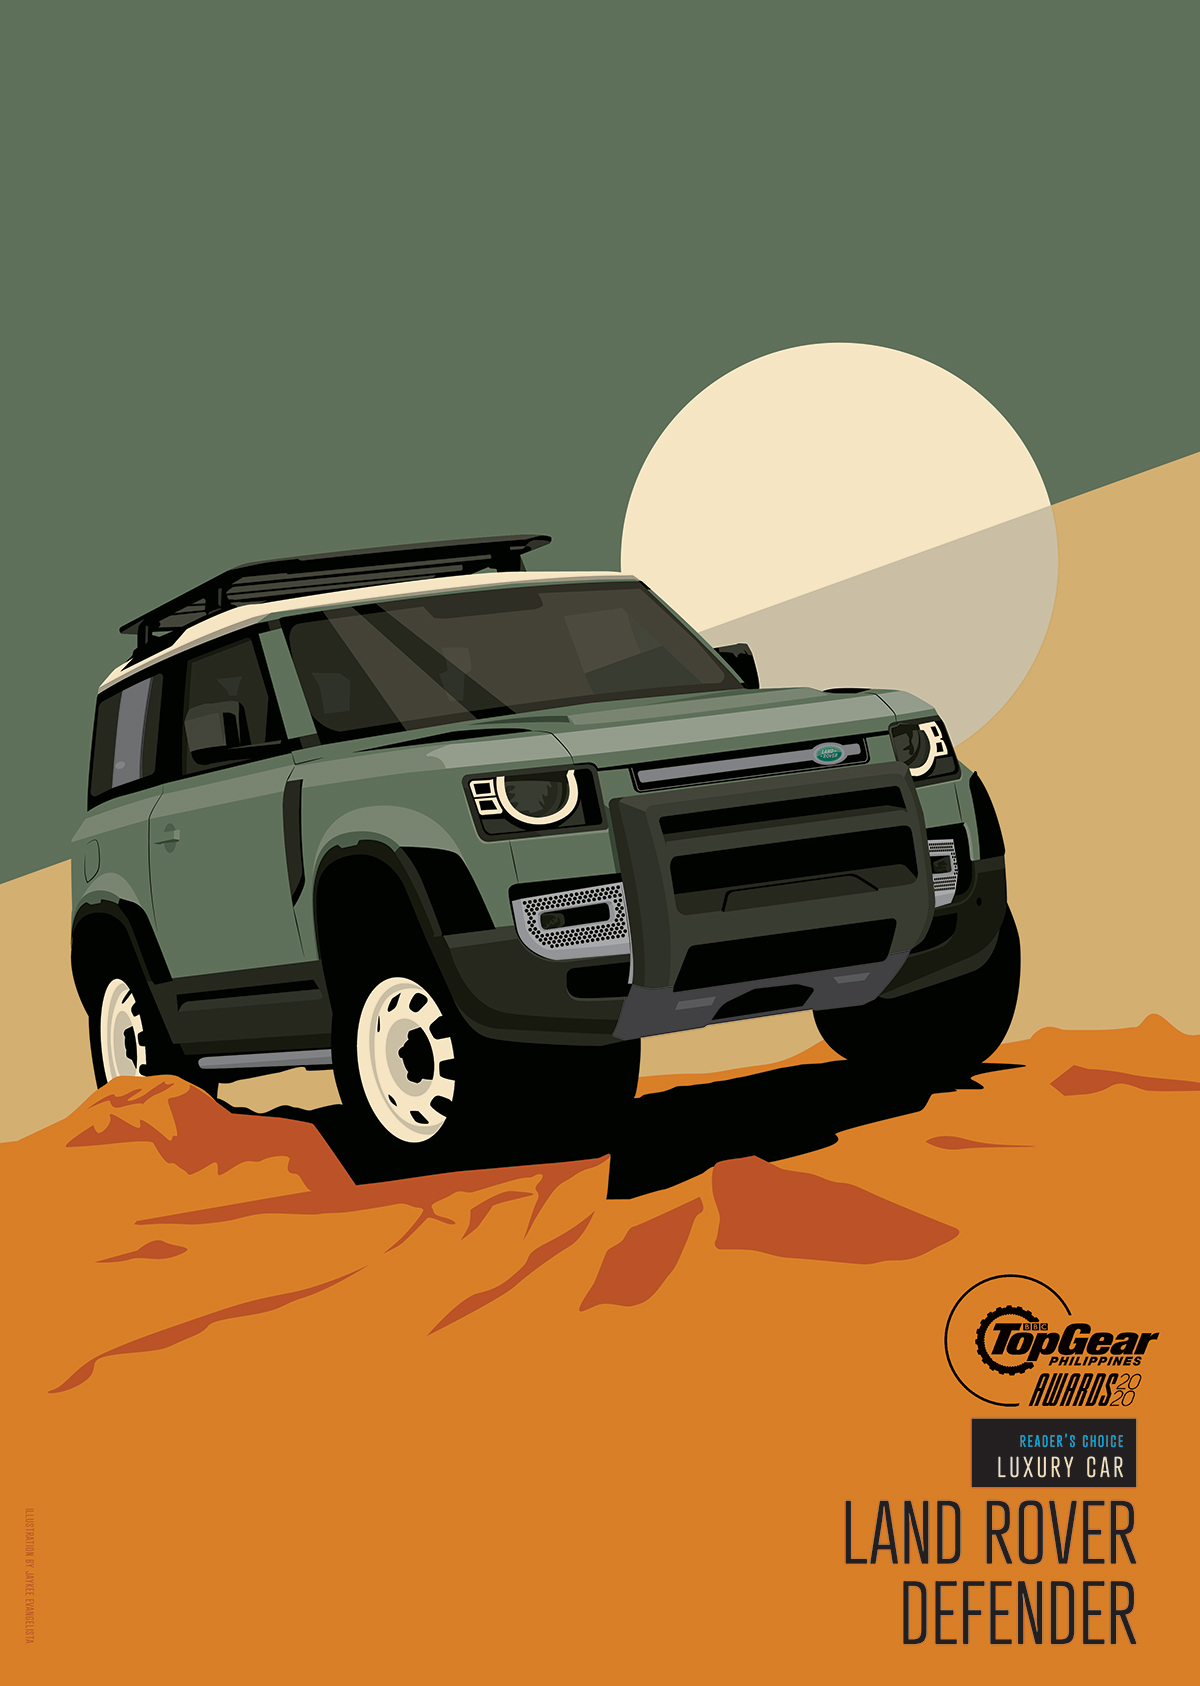 Top Gear Philippines' Reader's Choice: Luxury Car – Land Rover Defender